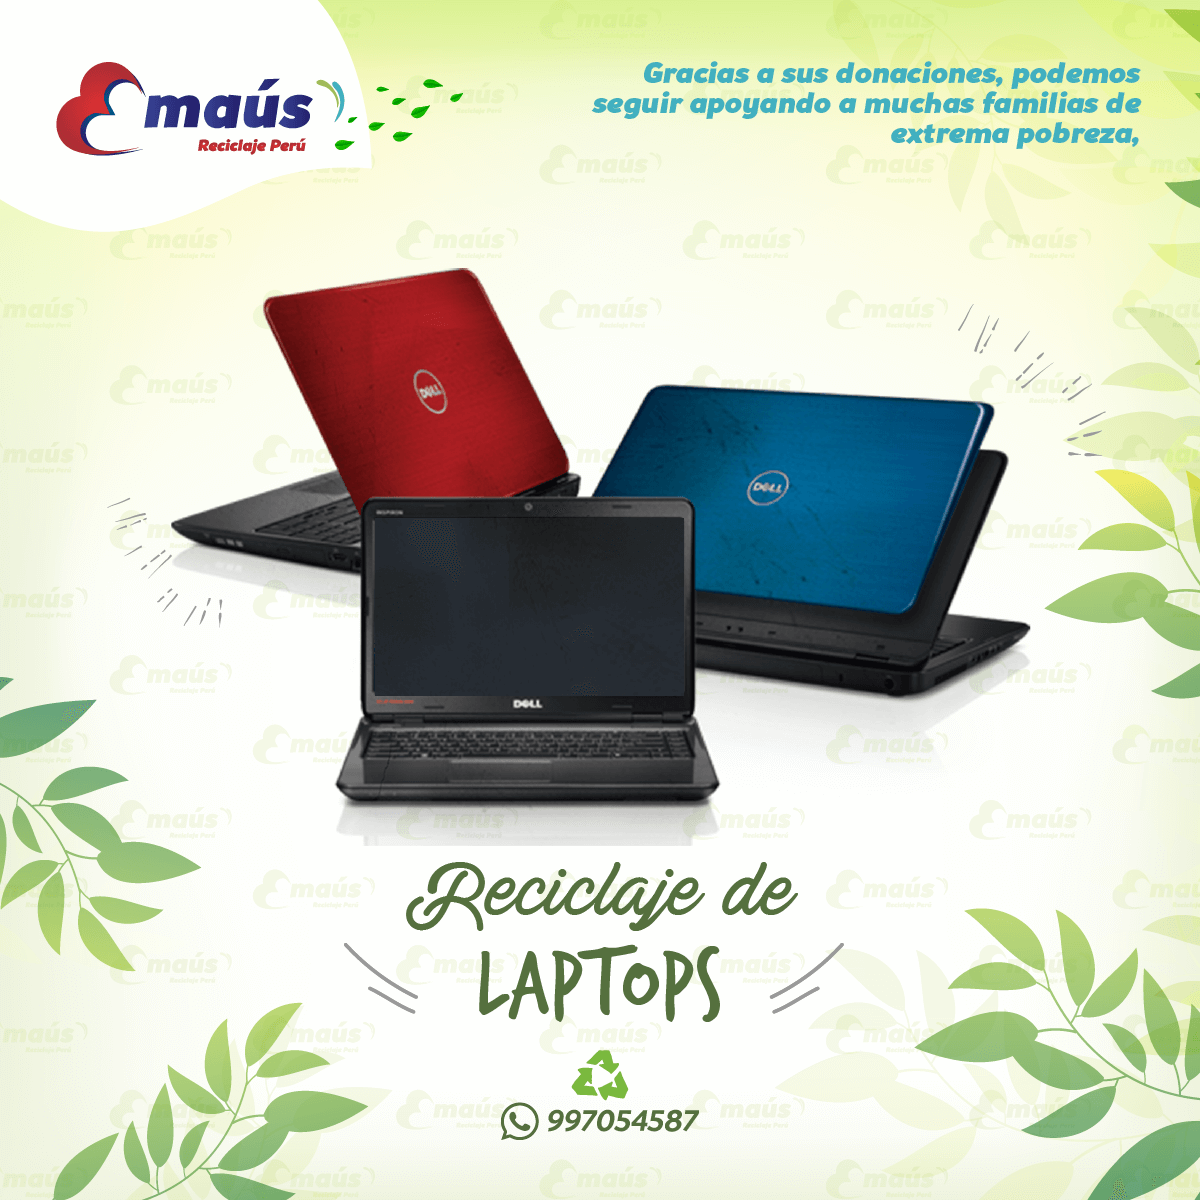 Recicla laptops